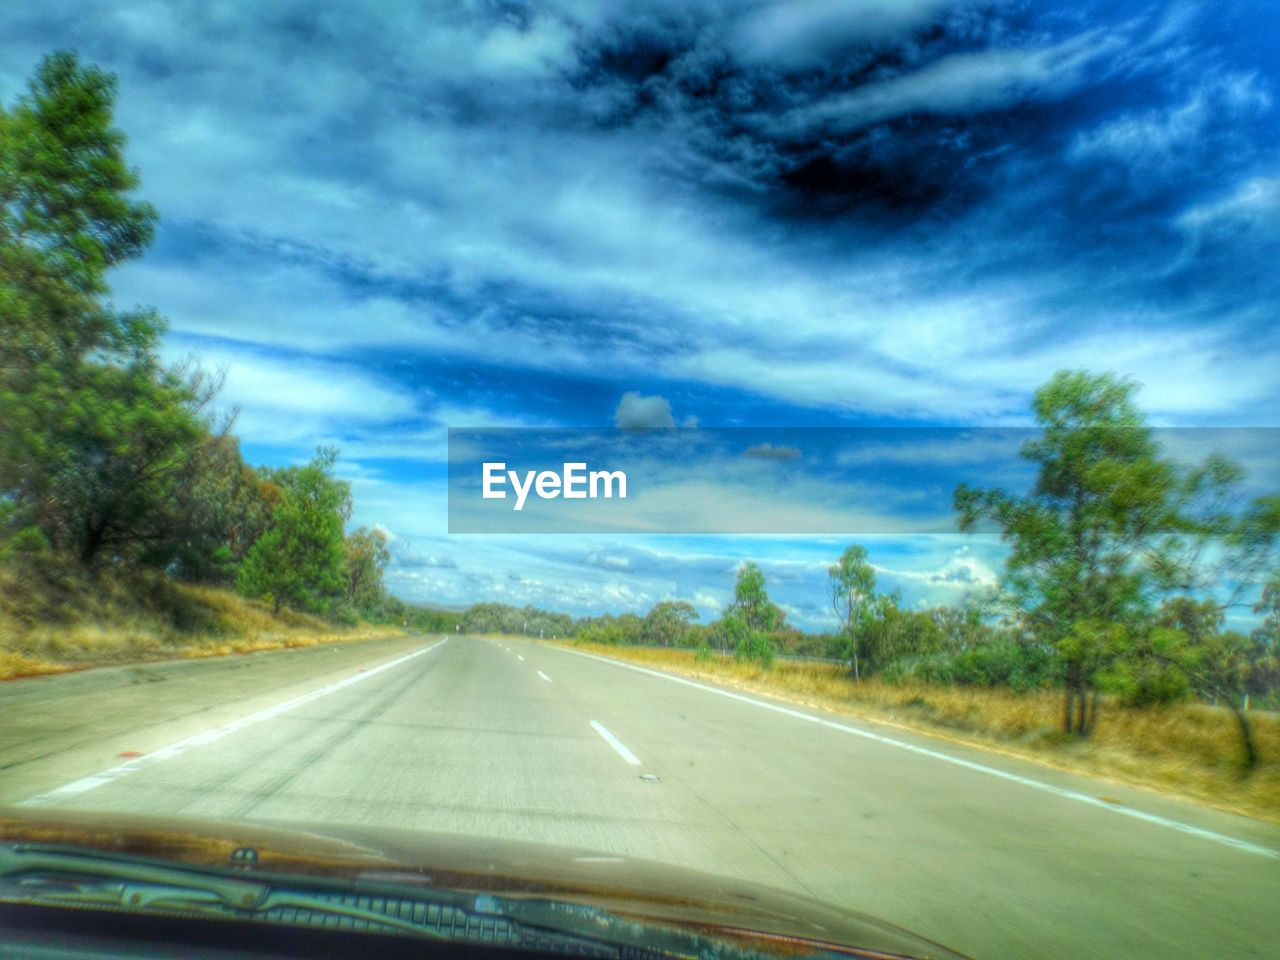 road, transportation, sky, cloud - sky, tree, the way forward, windshield, day, car interior, no people, landscape, nature, car point of view, scenics, land vehicle, car, outdoors, beauty in nature